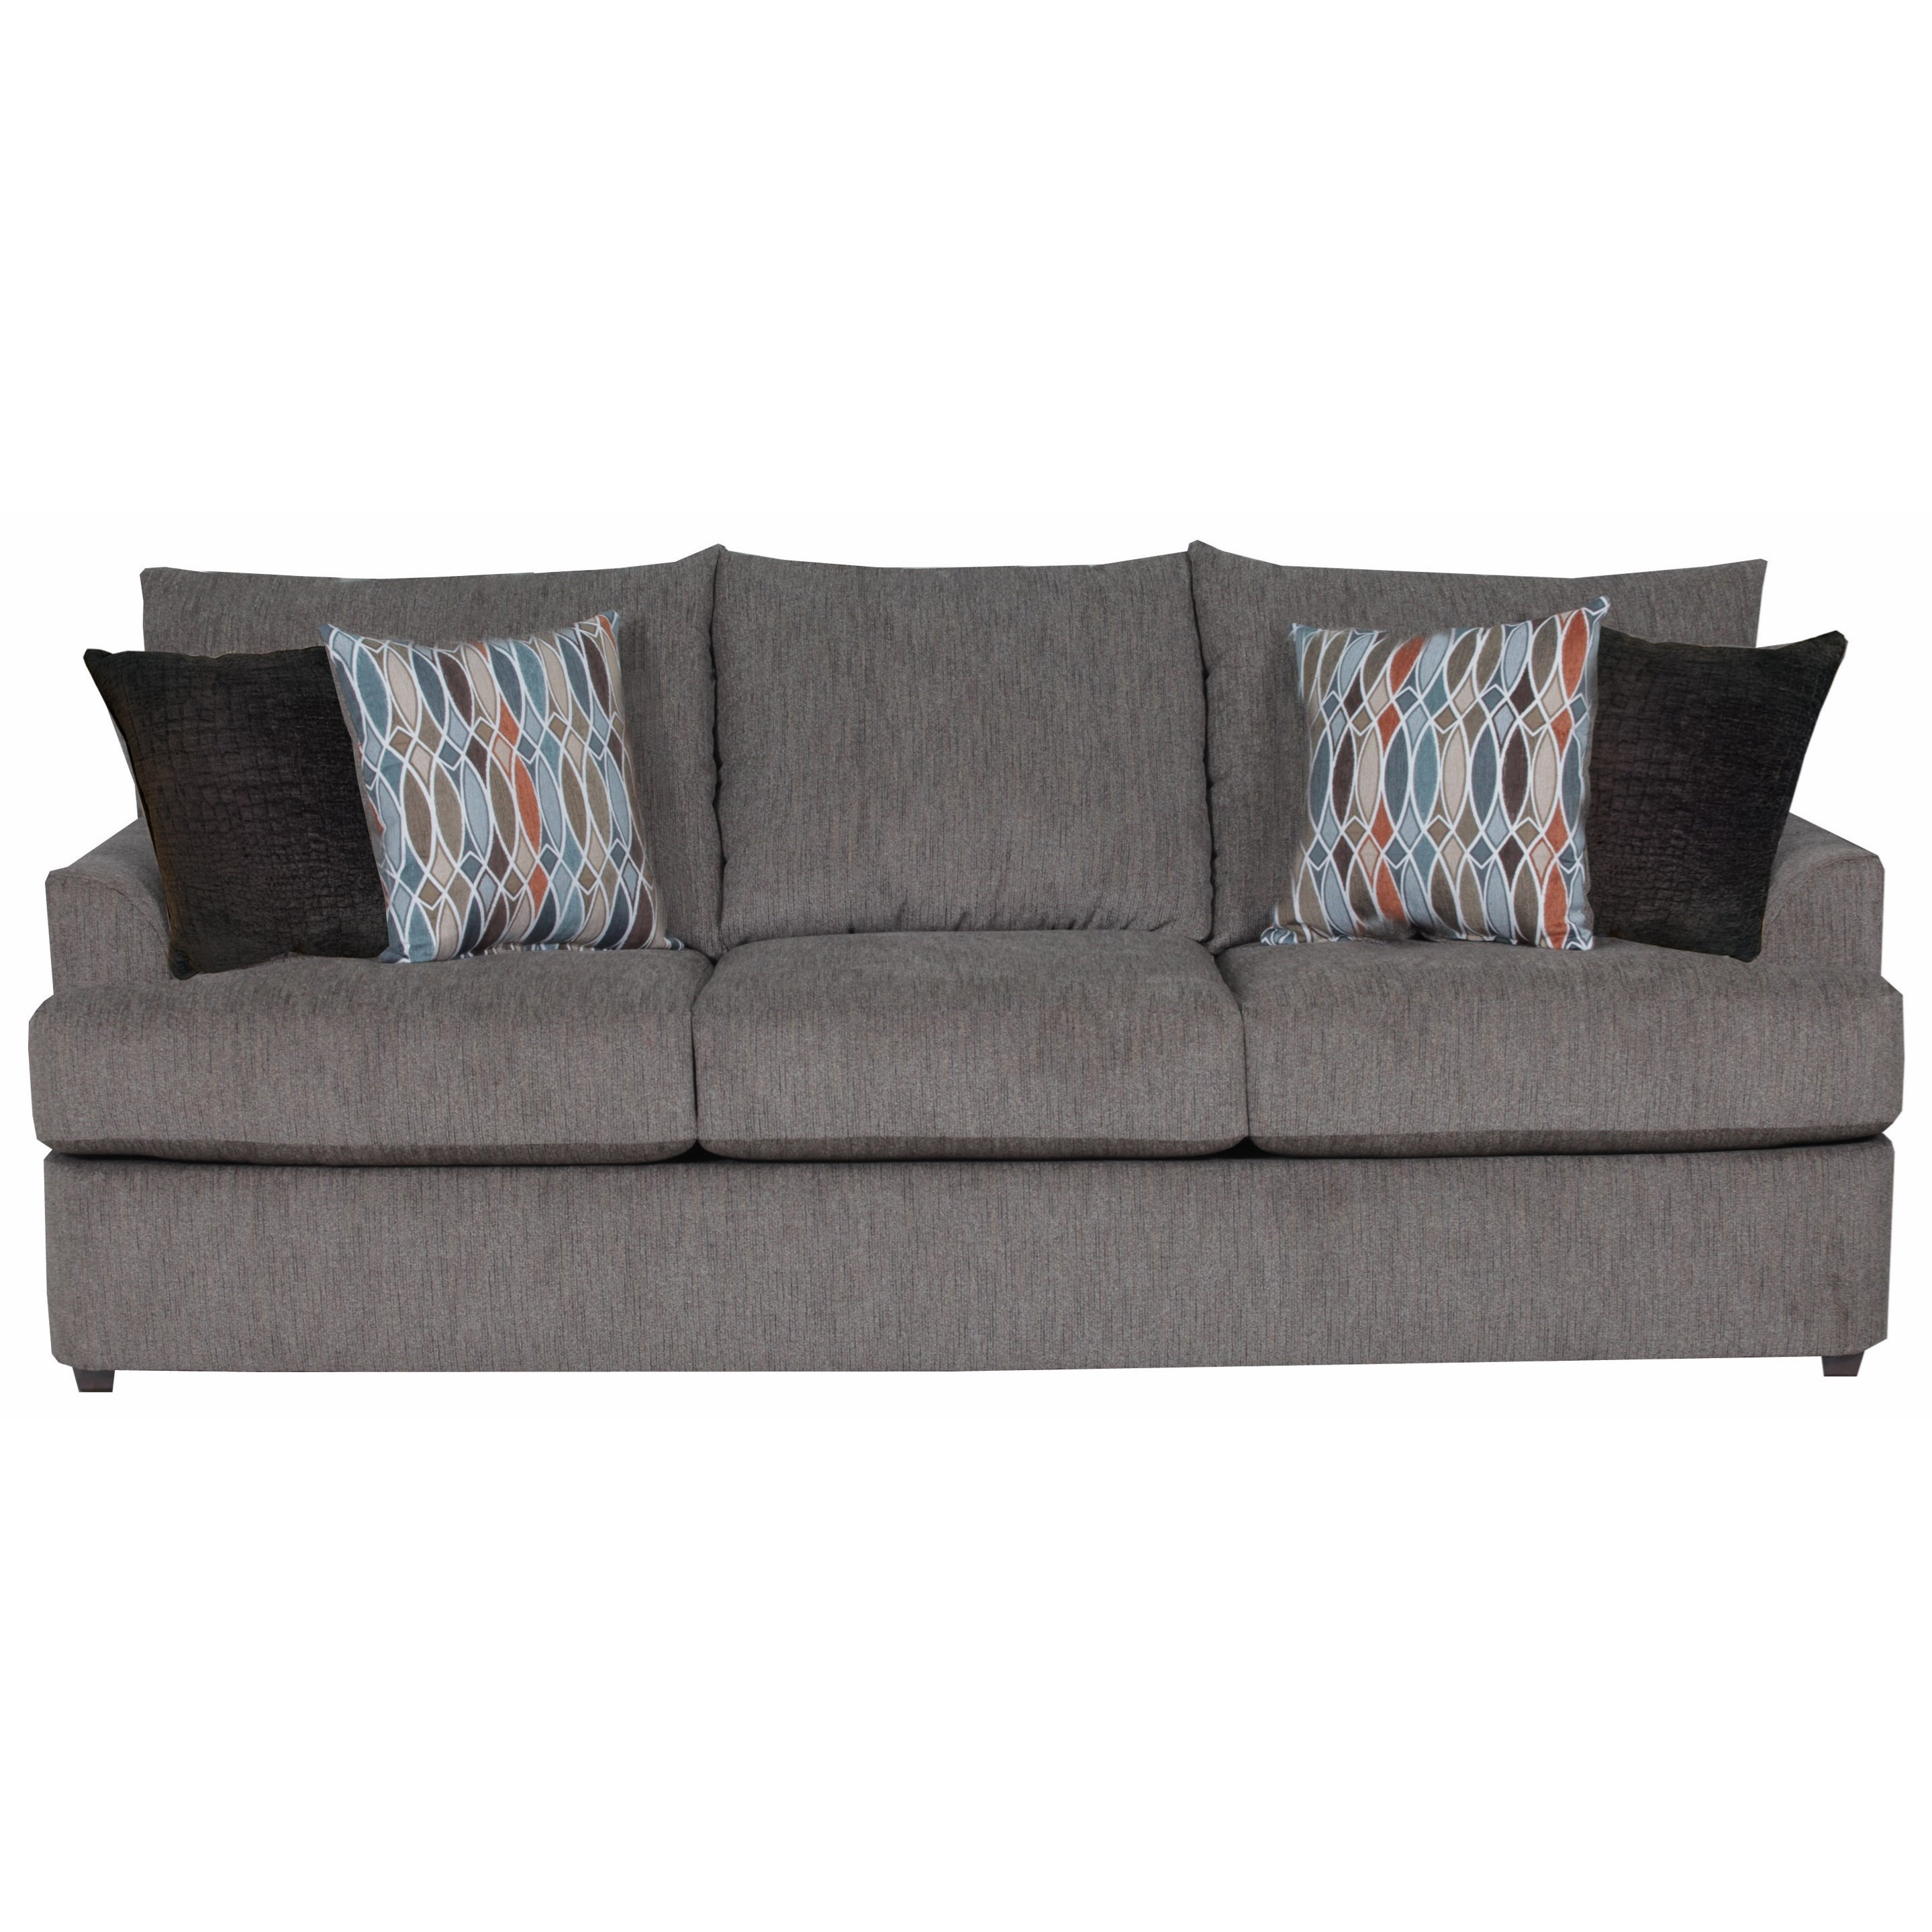 United Furniture Industries 8540BR Casual Sofa - Item Number: 8540BRSofa-GrandstandWalnut